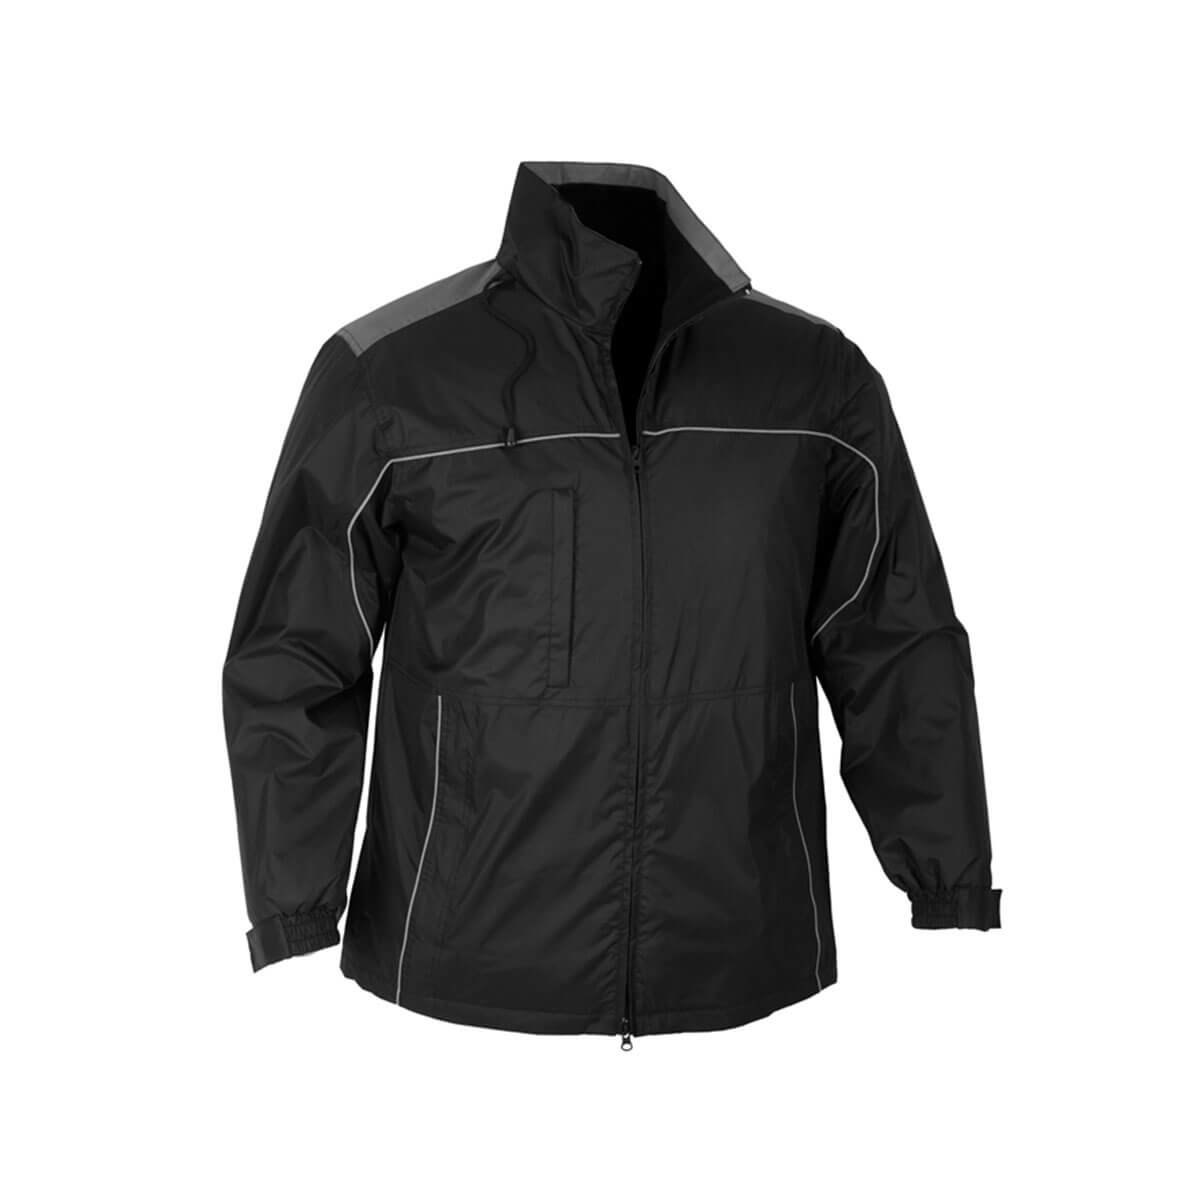 Mens Reactor Jacket-Black / Graphite